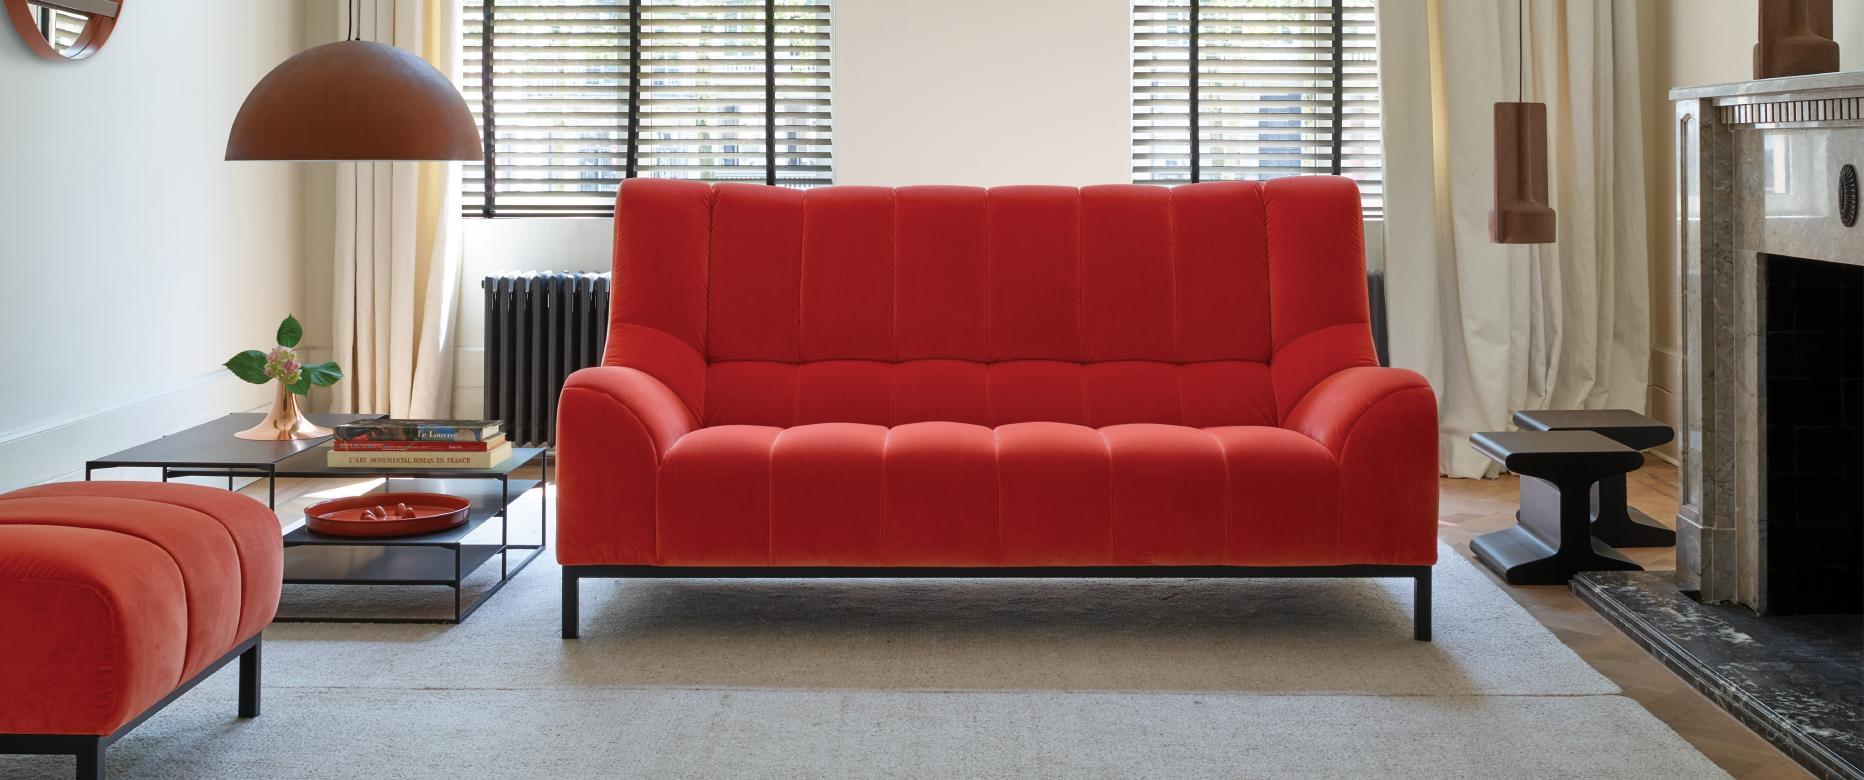 Sofa Bed Arredamento.Ligne Roset Contemporary High End Furniture